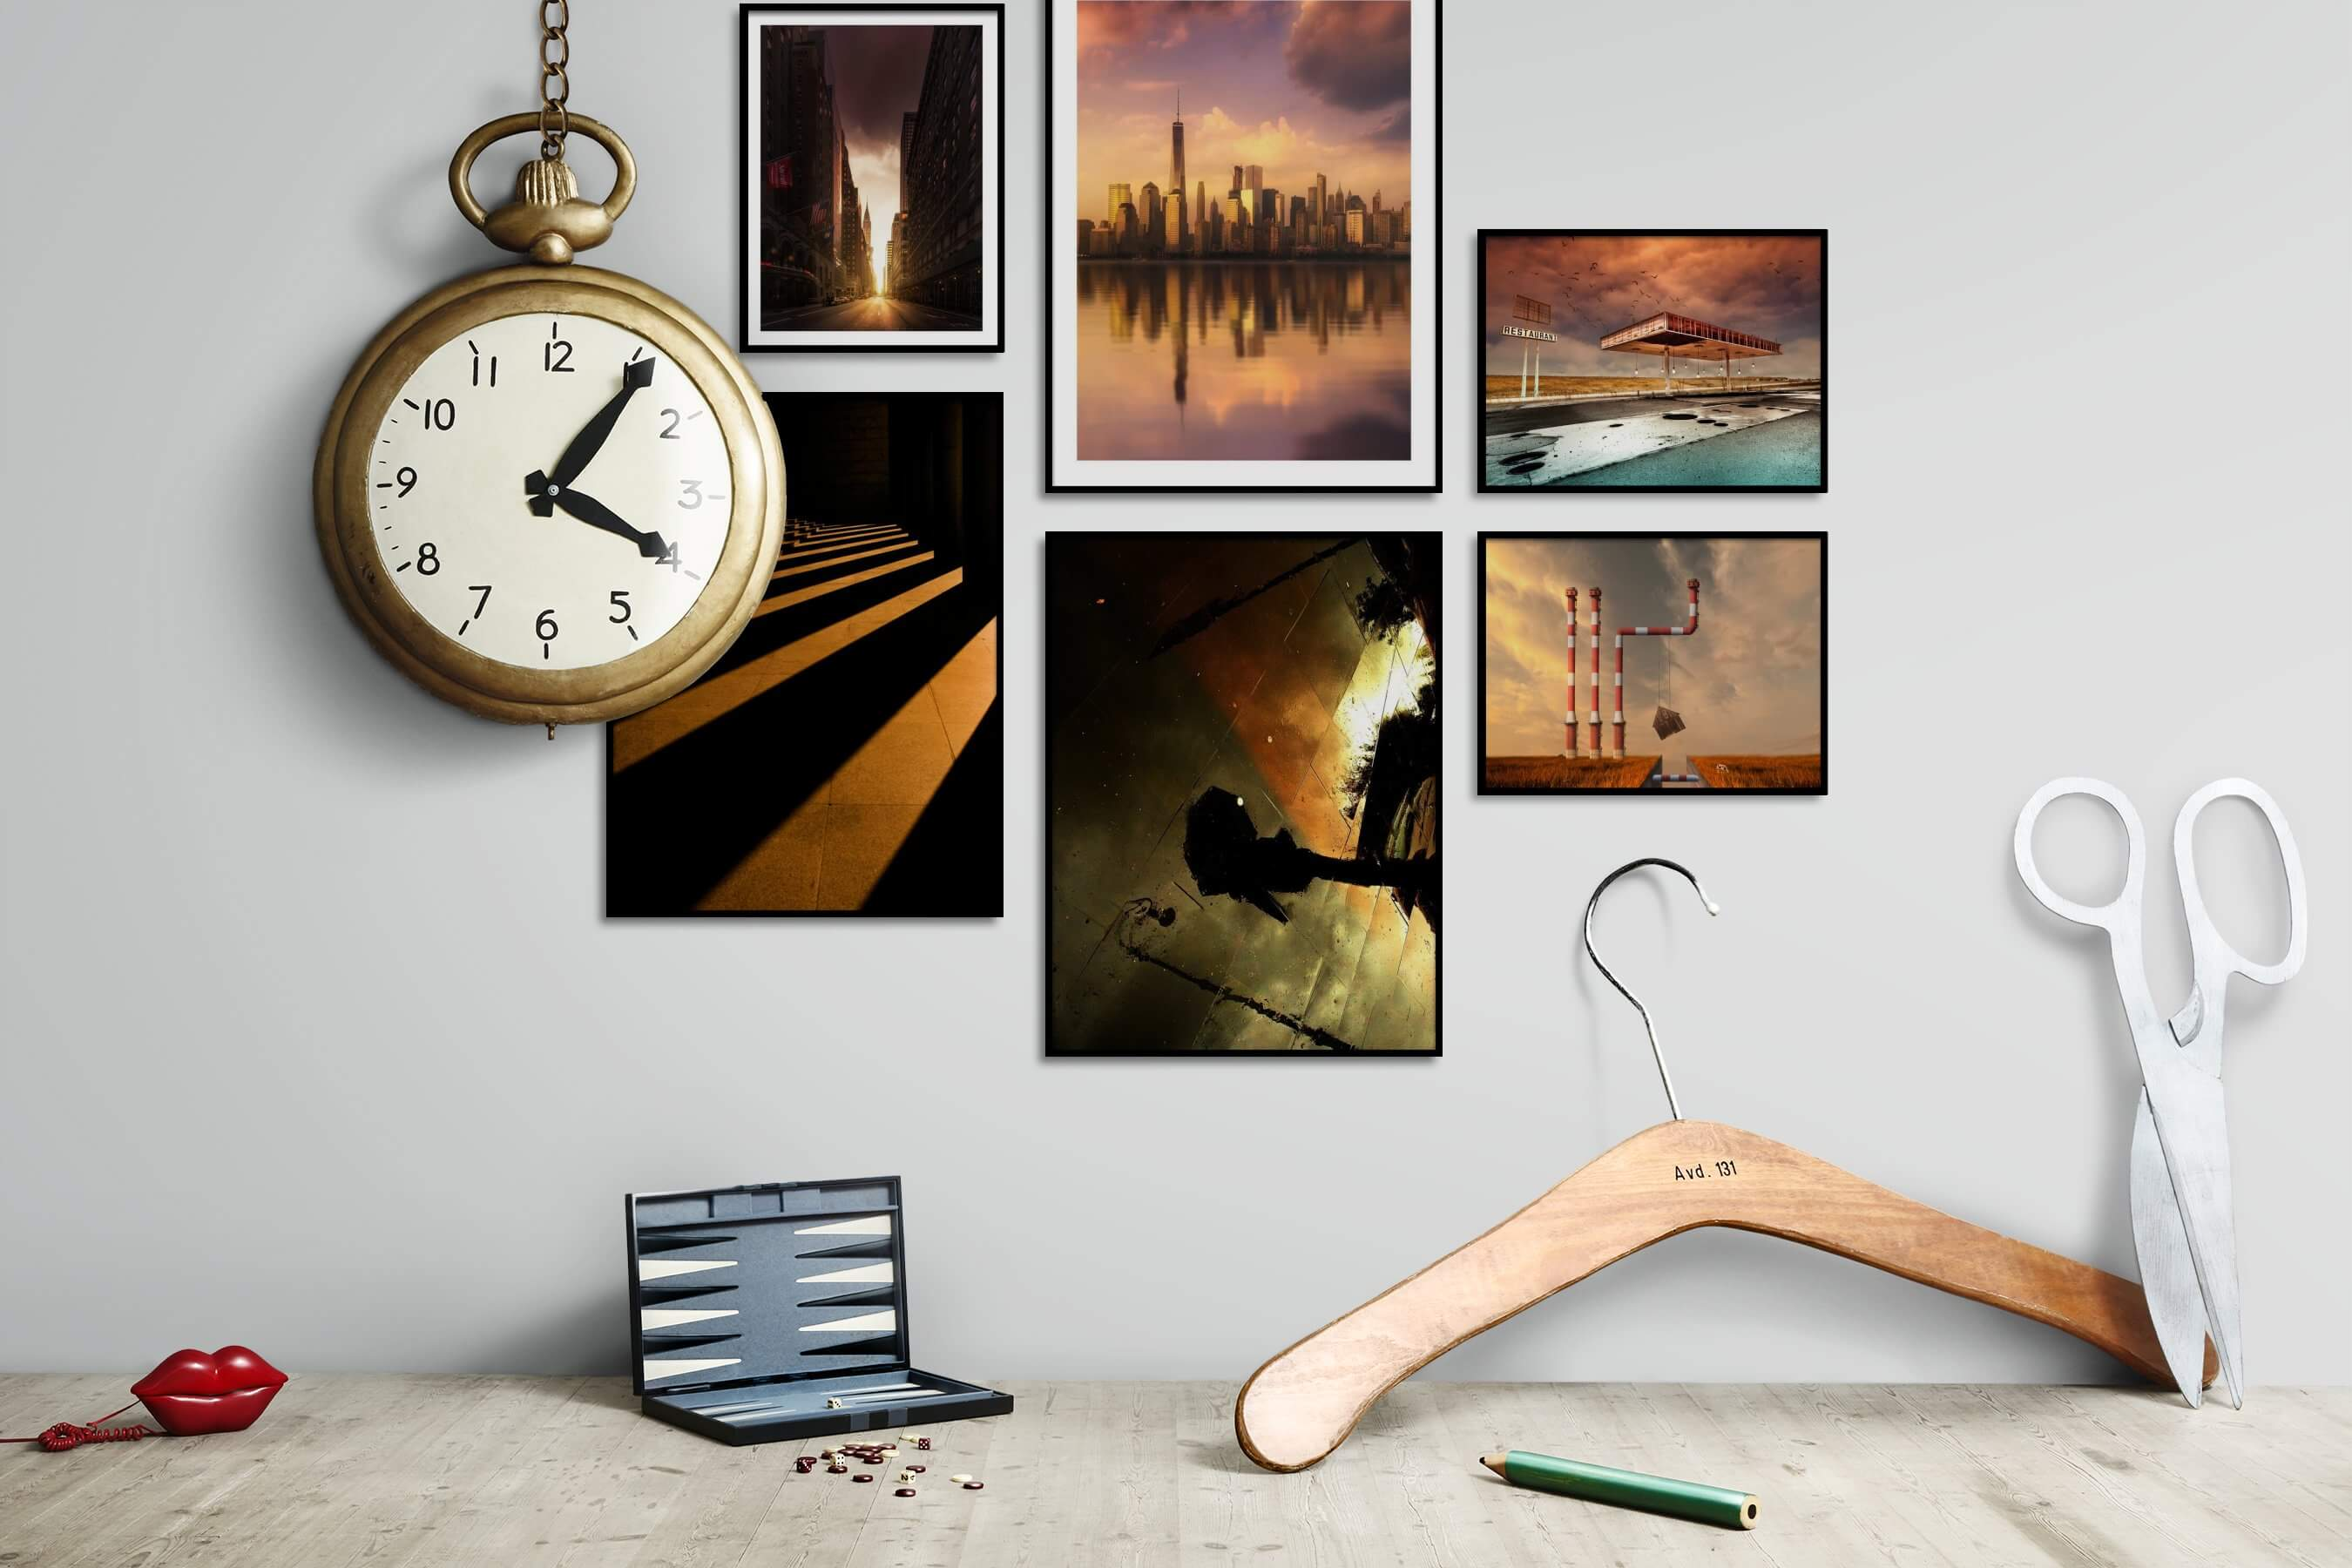 Gallery wall idea with six framed pictures arranged on a wall depicting City Life, Americana, Dark Tones, For the Moderate, Artsy, Country Life, and Vintage